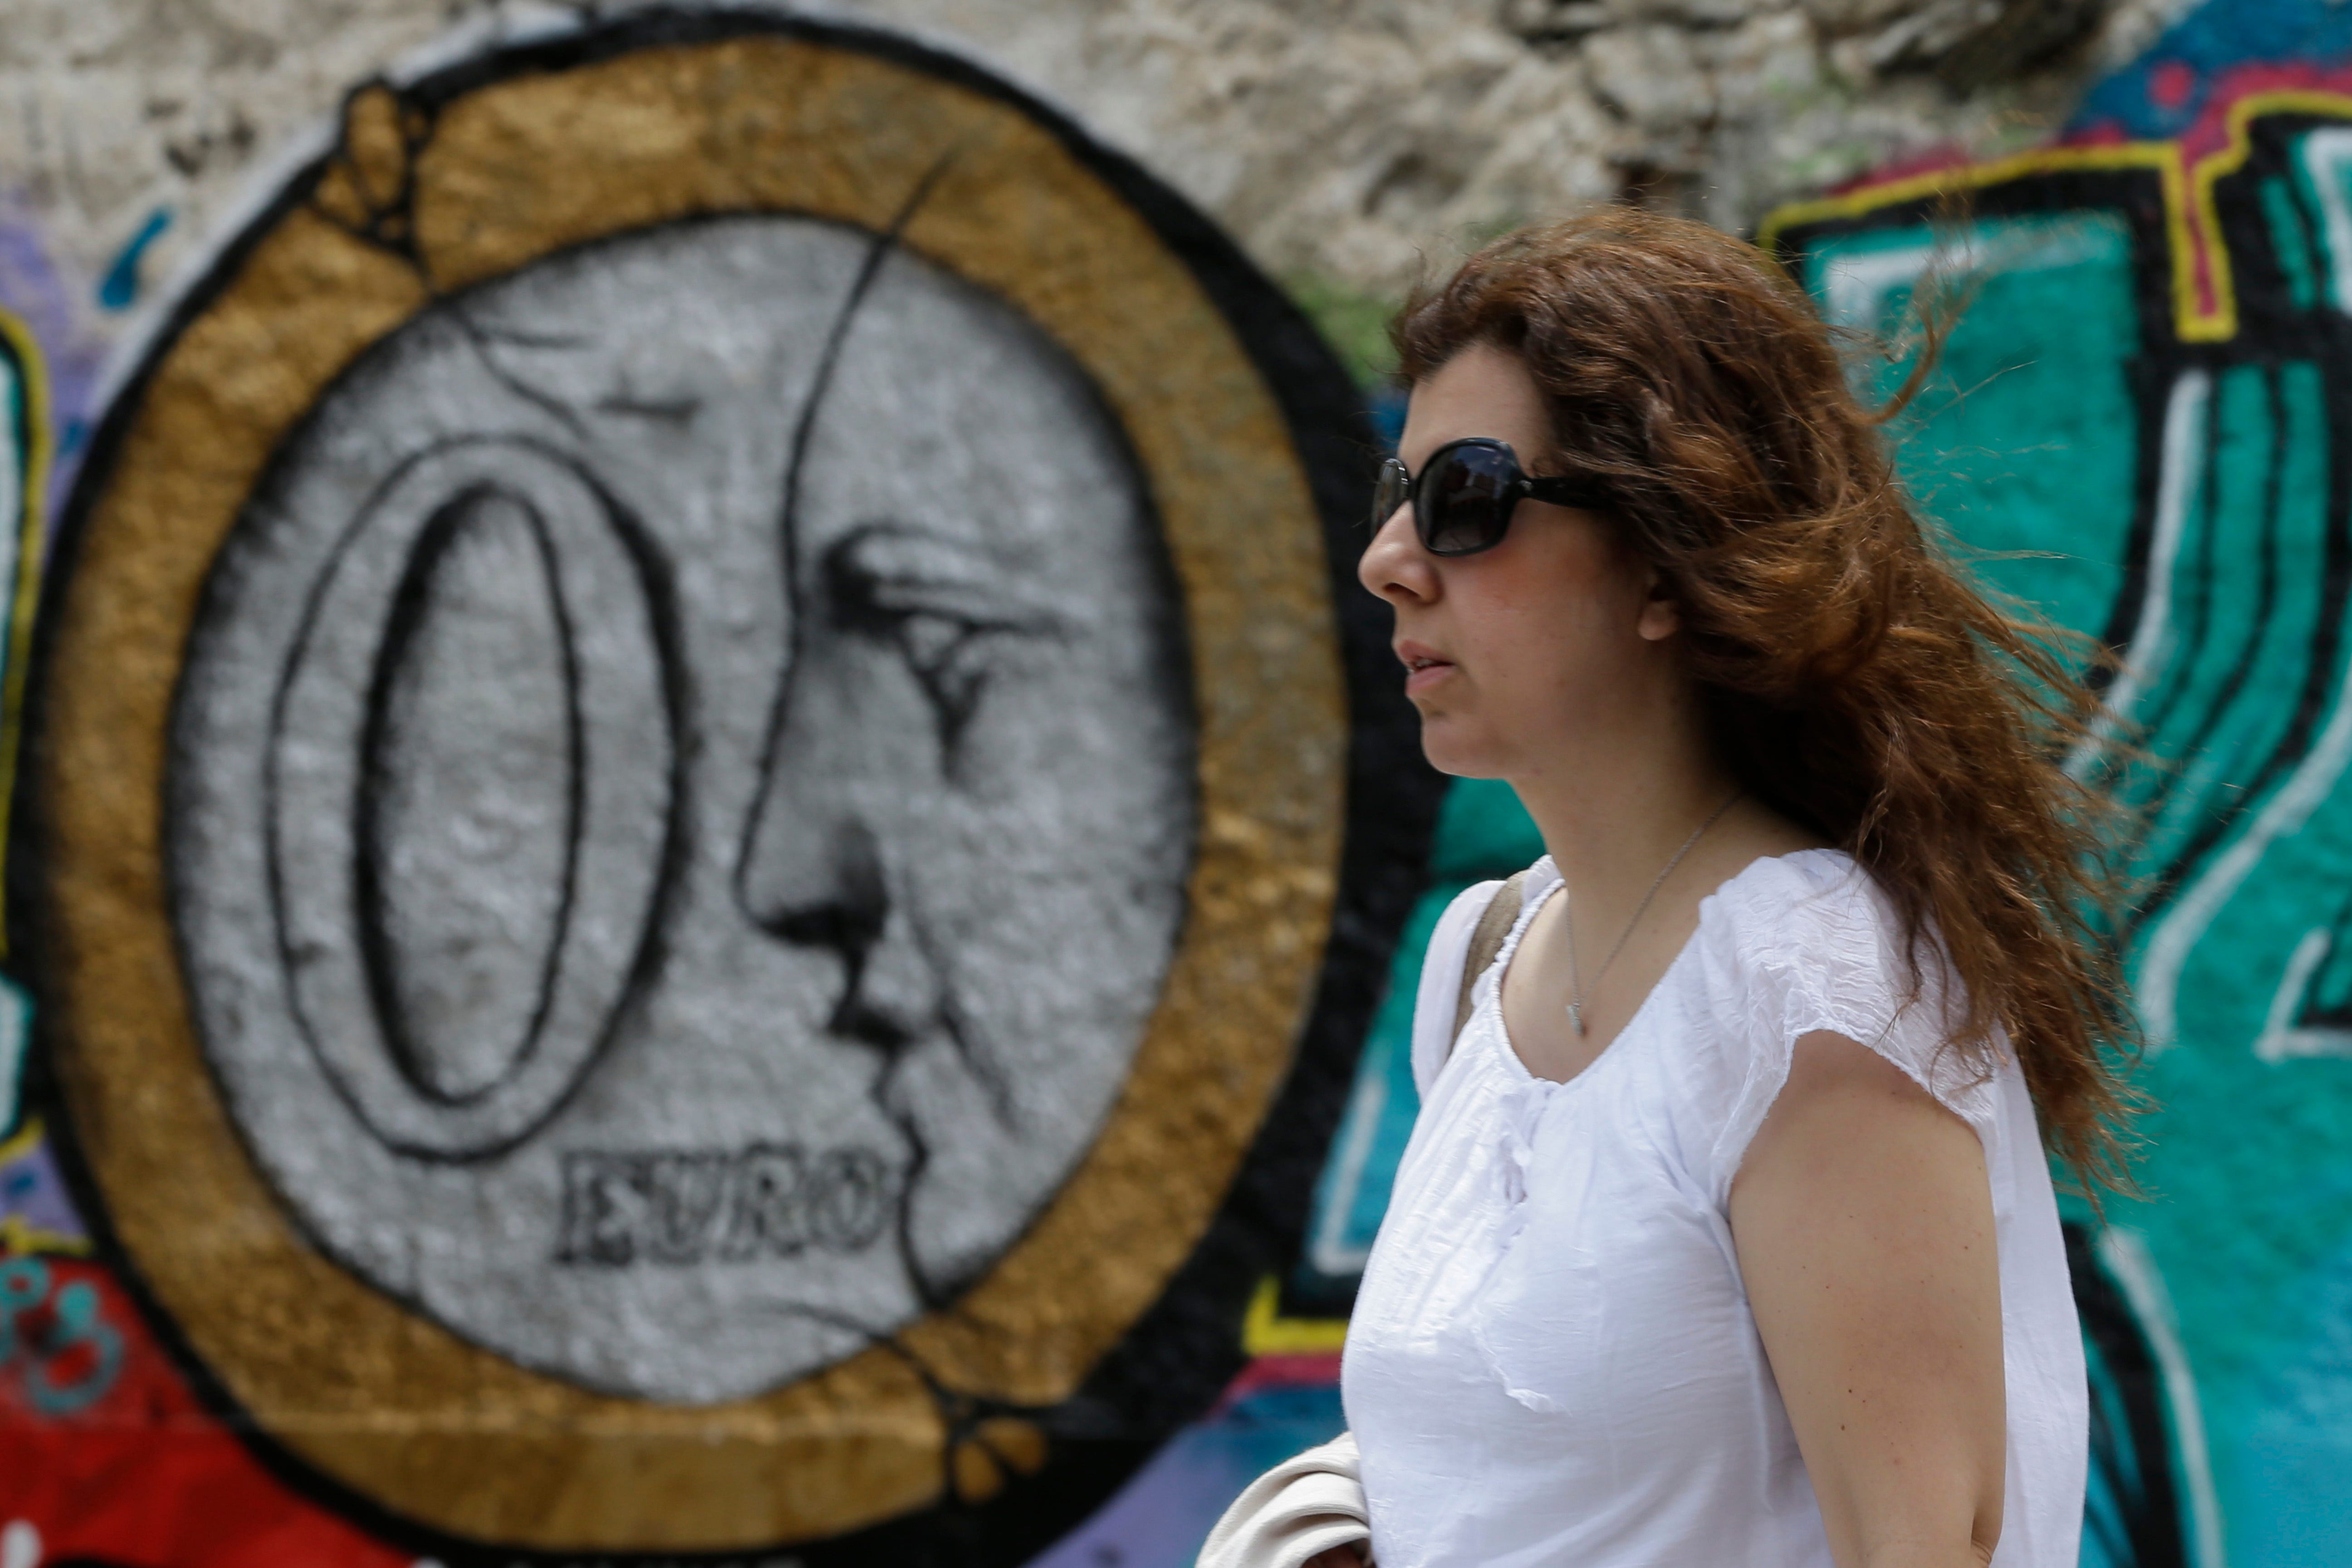 Greece at loggerheads with creditors